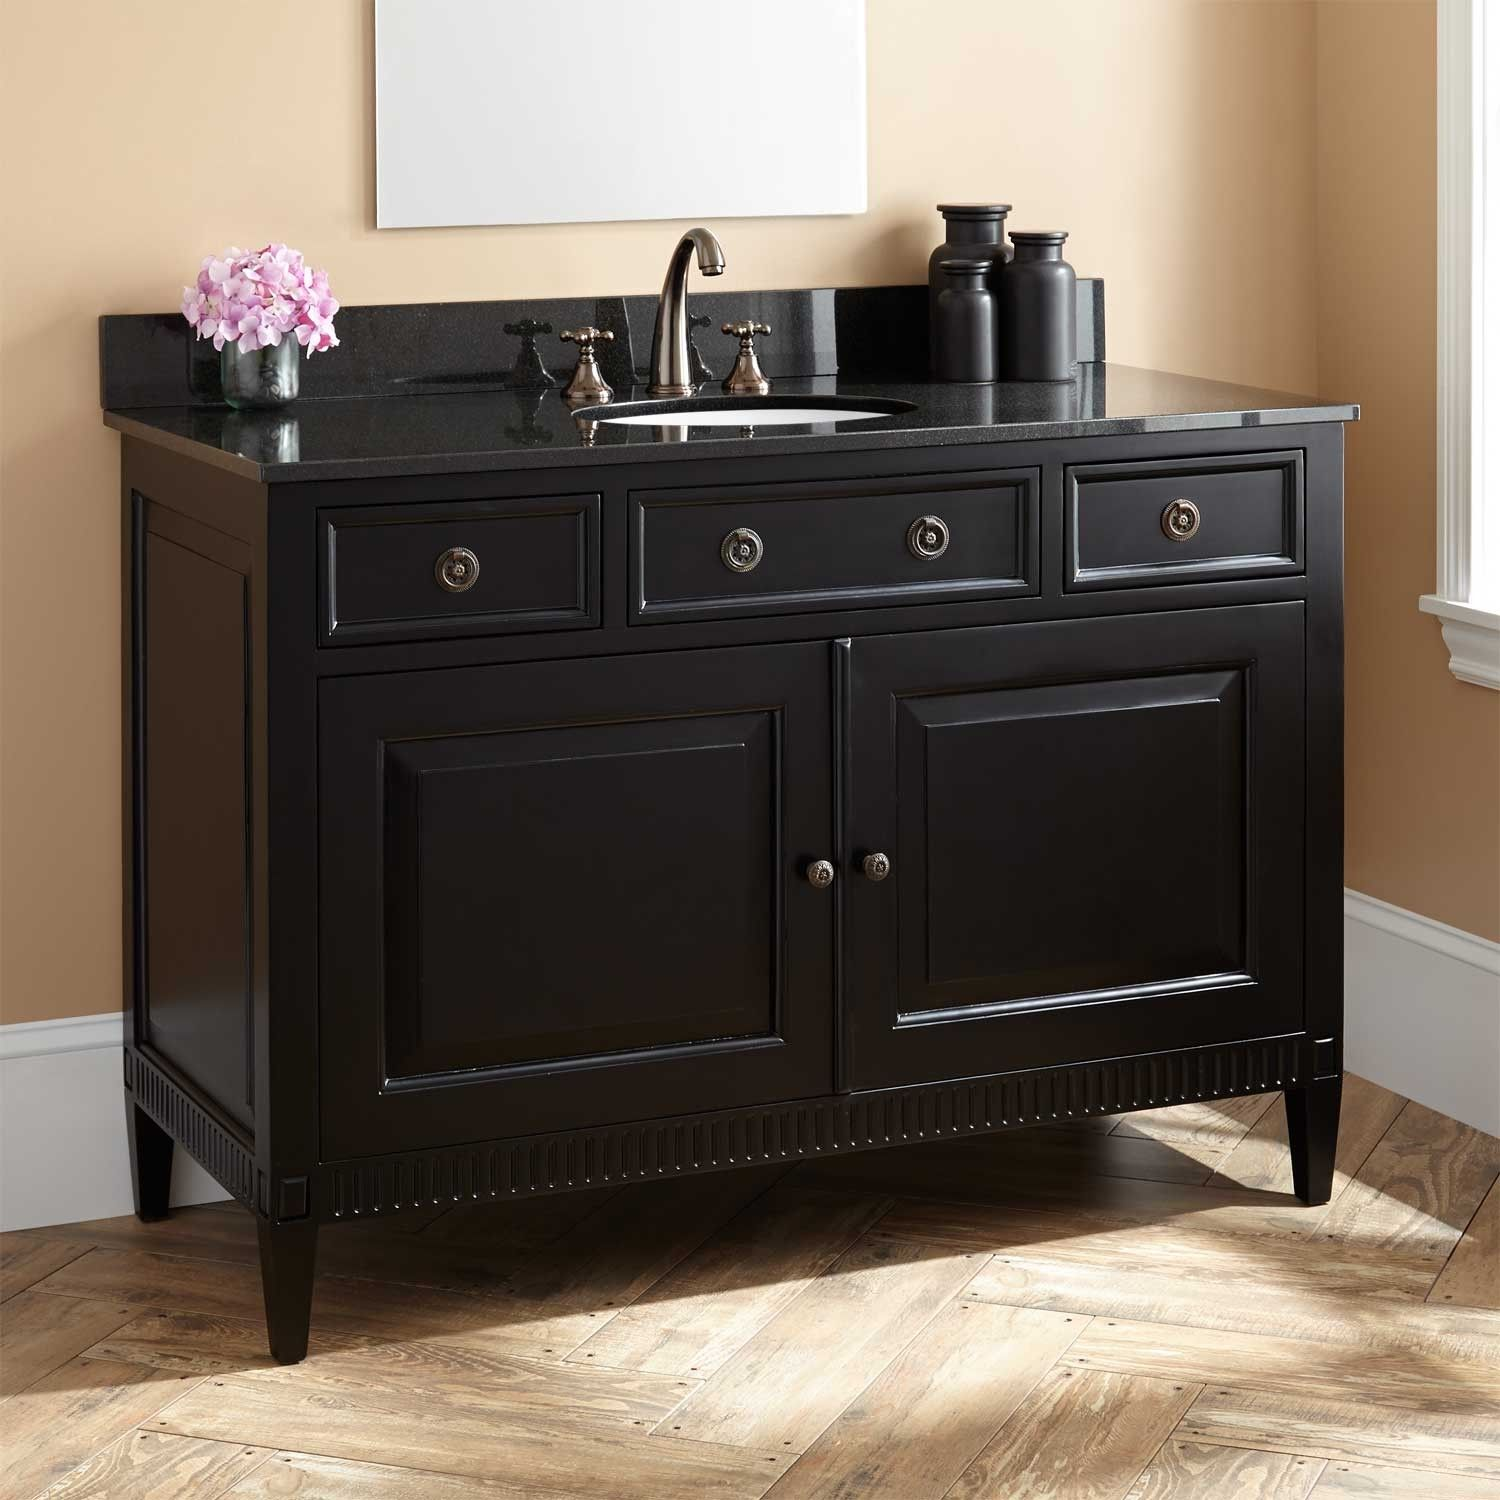 "48"" Hawkins Mahogany Vanity for Undermount Sink Black"